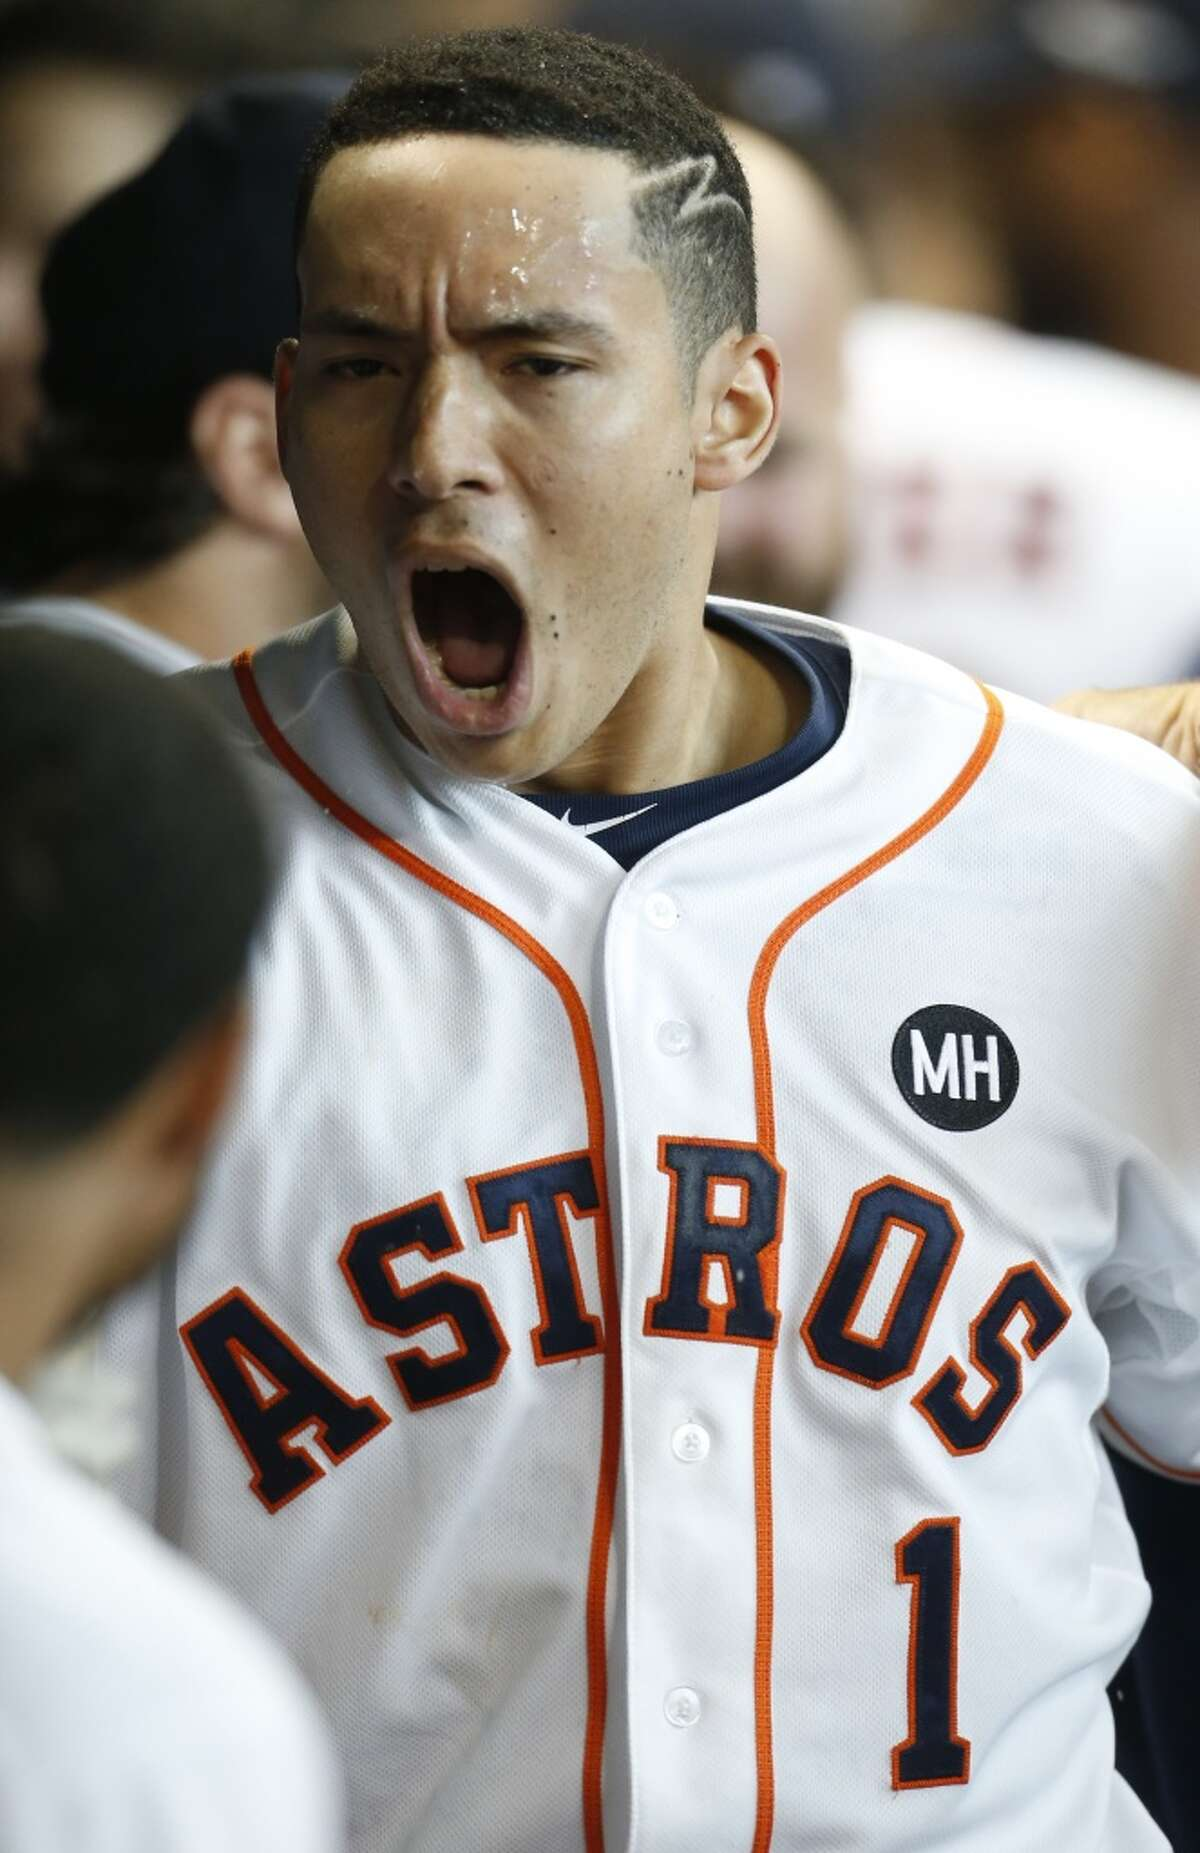 Young Astros star Carlos Correa has put up some impressive numbers during the first 100 games of his career. Click through the gallery to see what other current and former MLB stars did in their first 100 games.